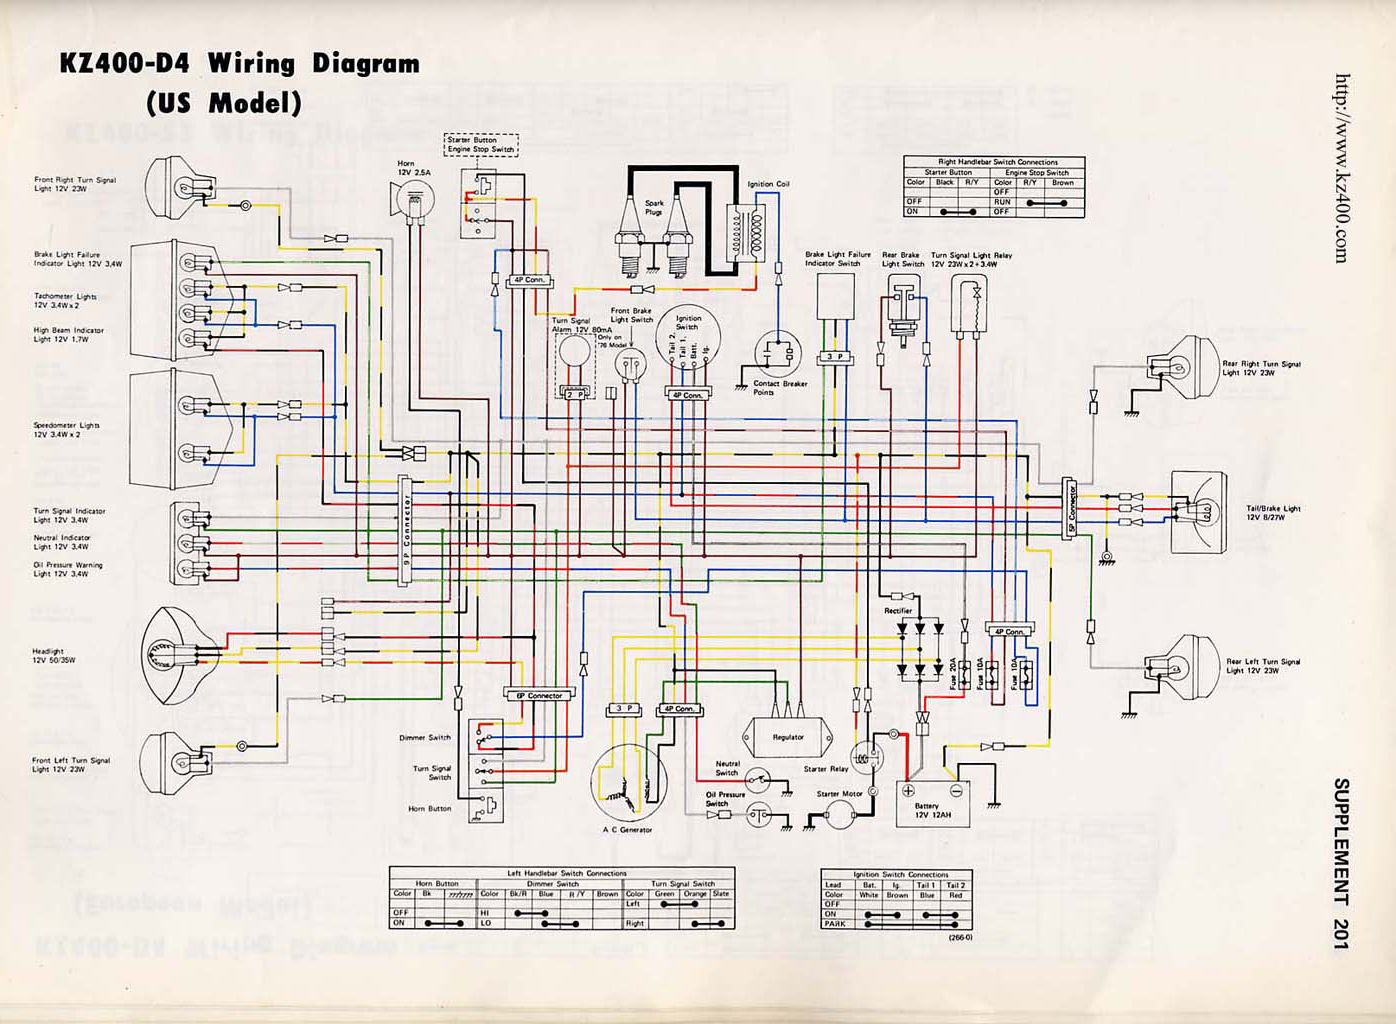 hight resolution of kz400 wiring diagram wiring diagram repair guides 1979 kz400 wiring diagram